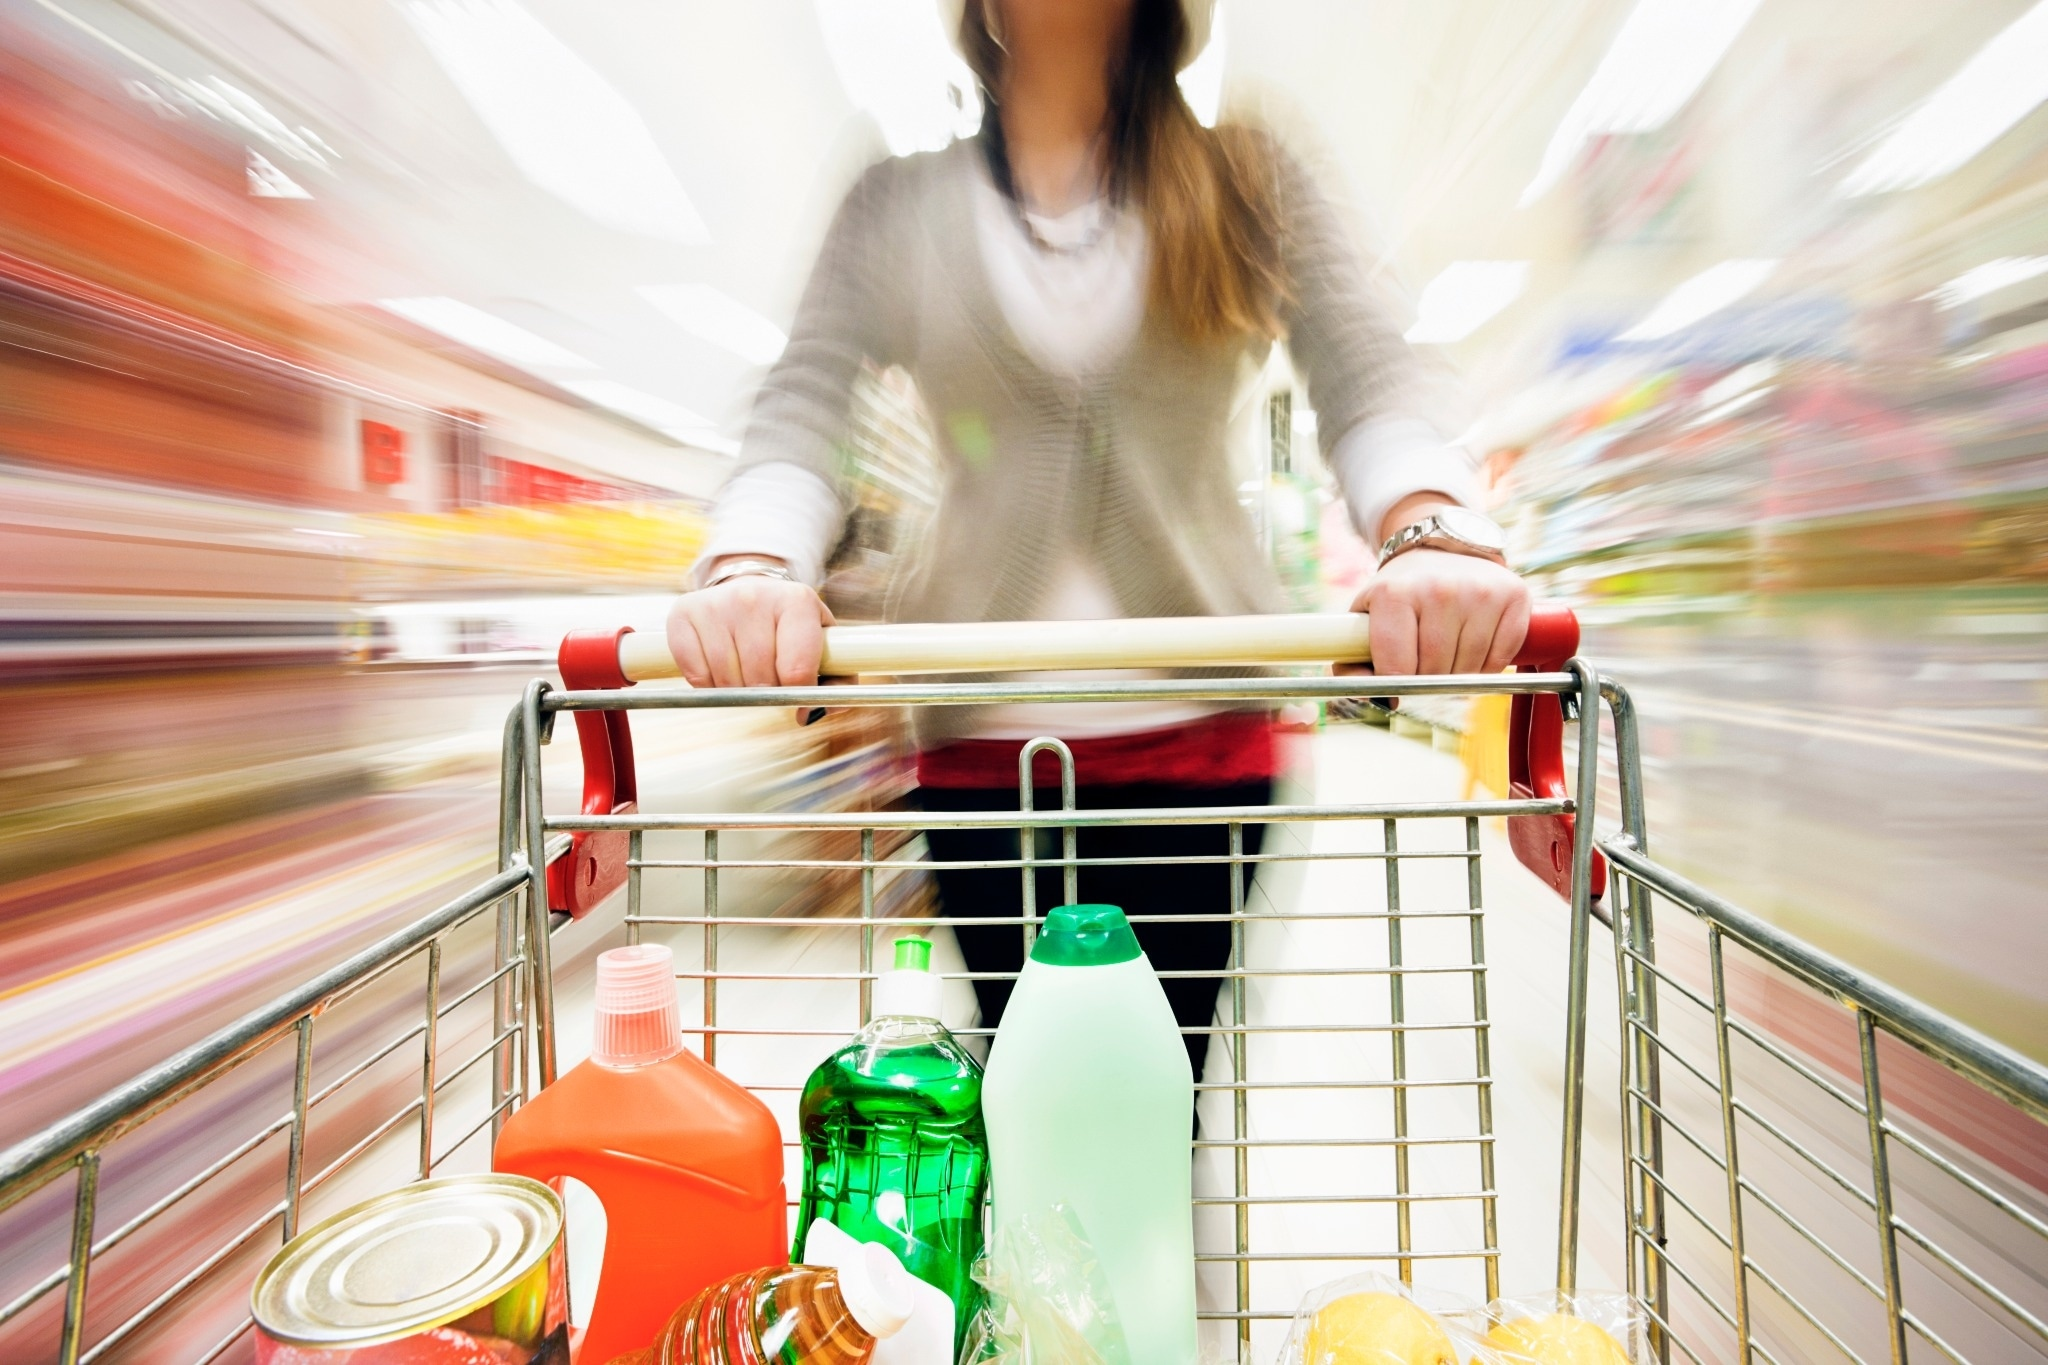 5 Grocery Shopping Tips From The Top Extreme Couponers